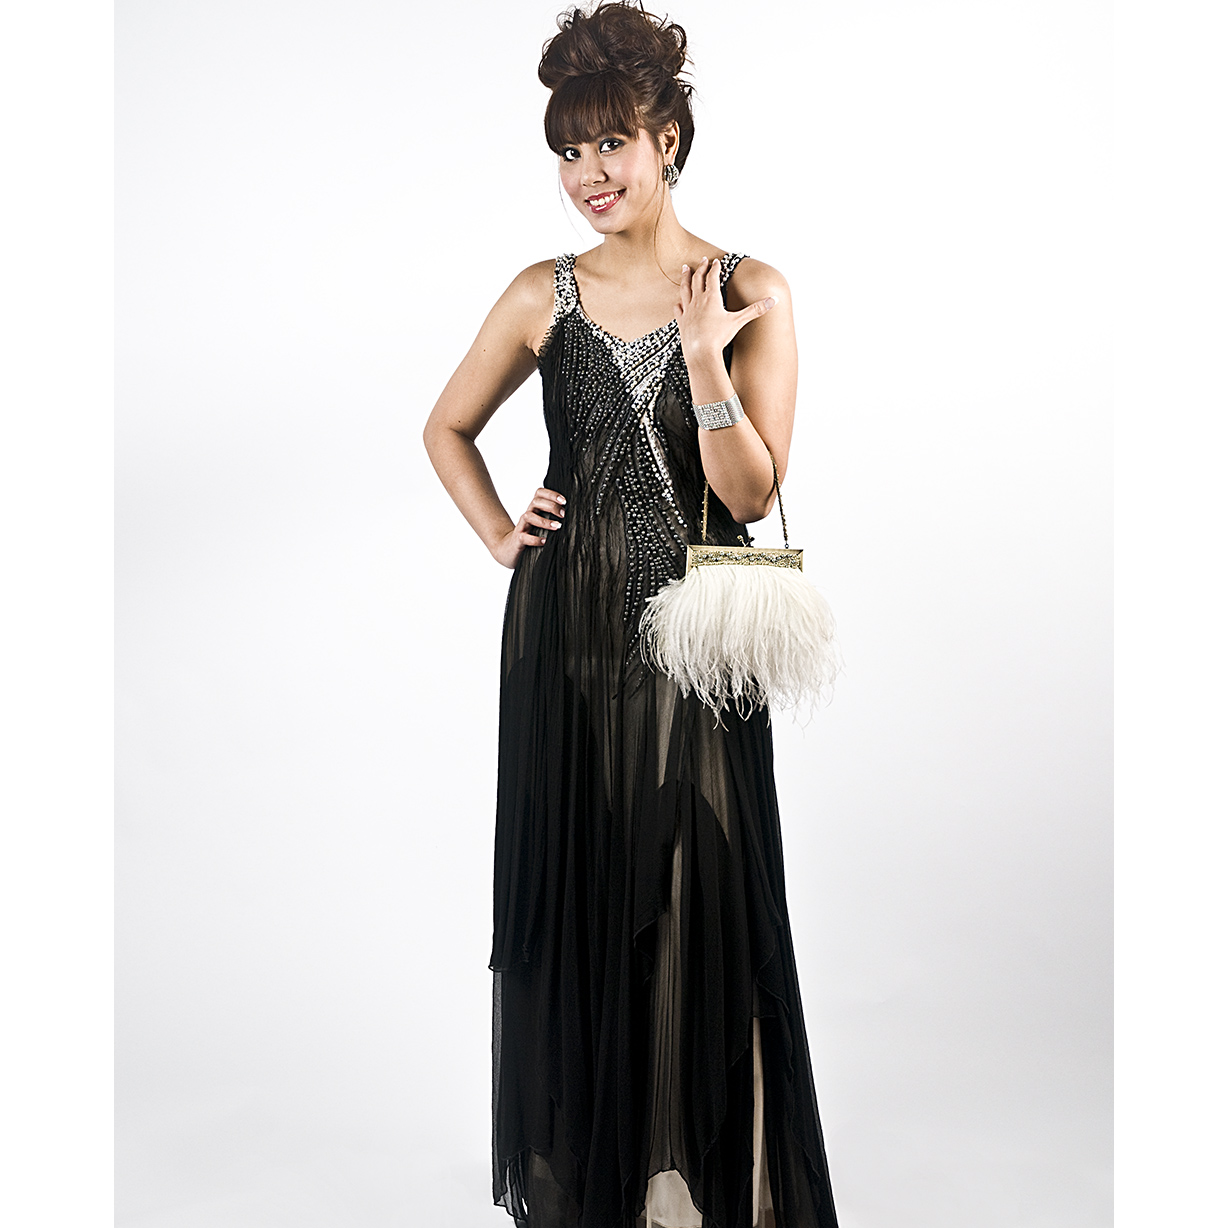 Long Black Layered Gown with Pearl Embelishment large 1